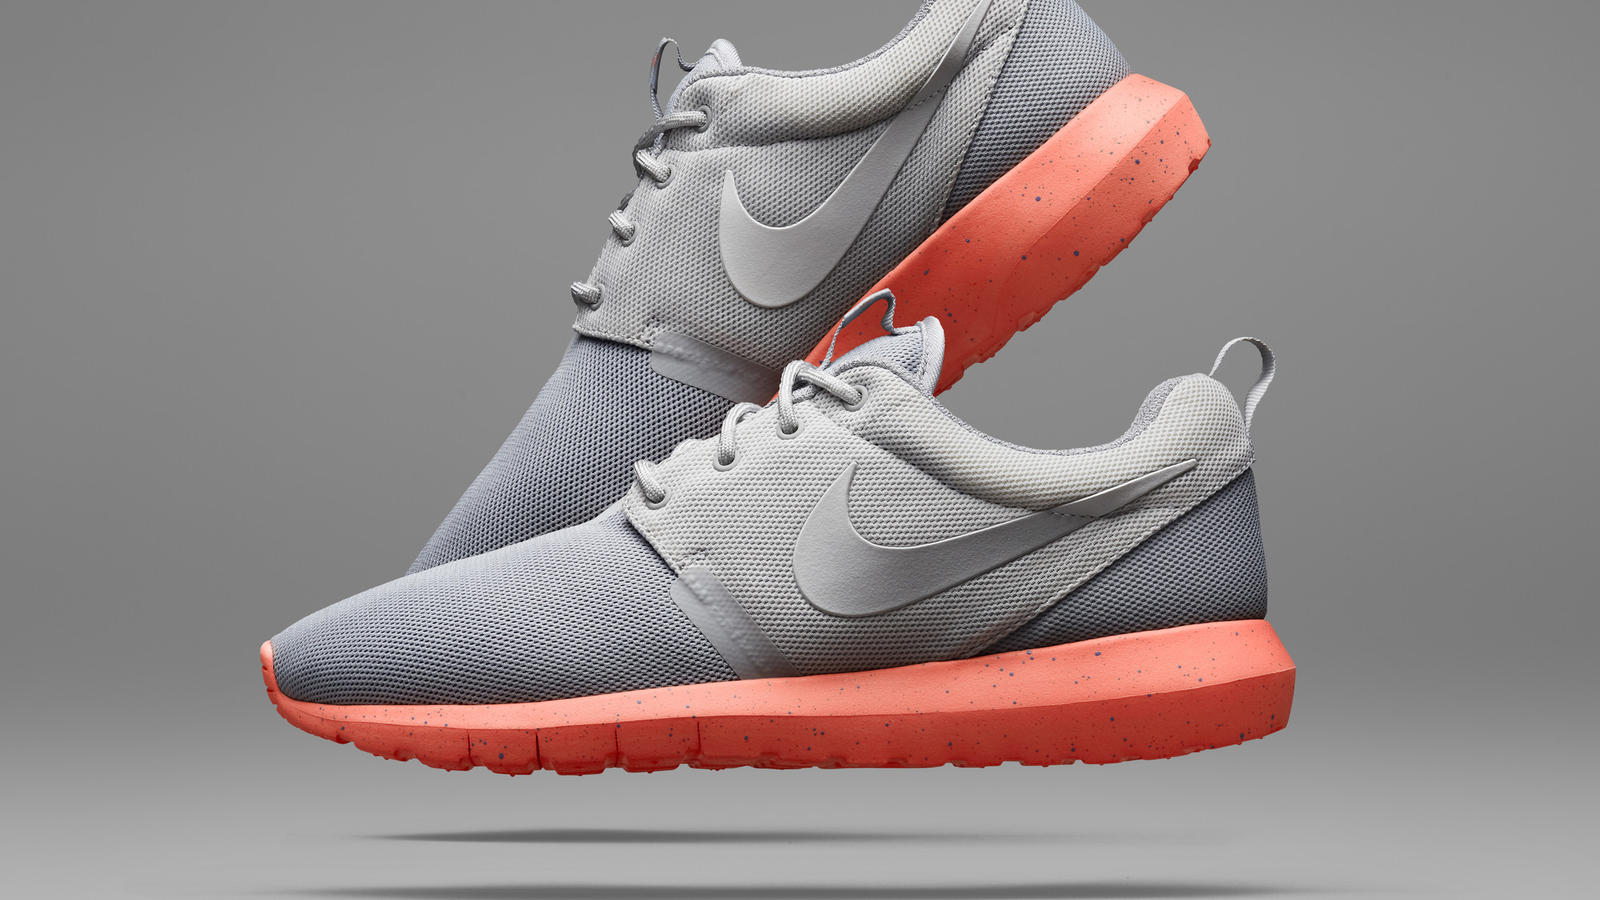 Nike Breathe Collection: Nike Roshe Run